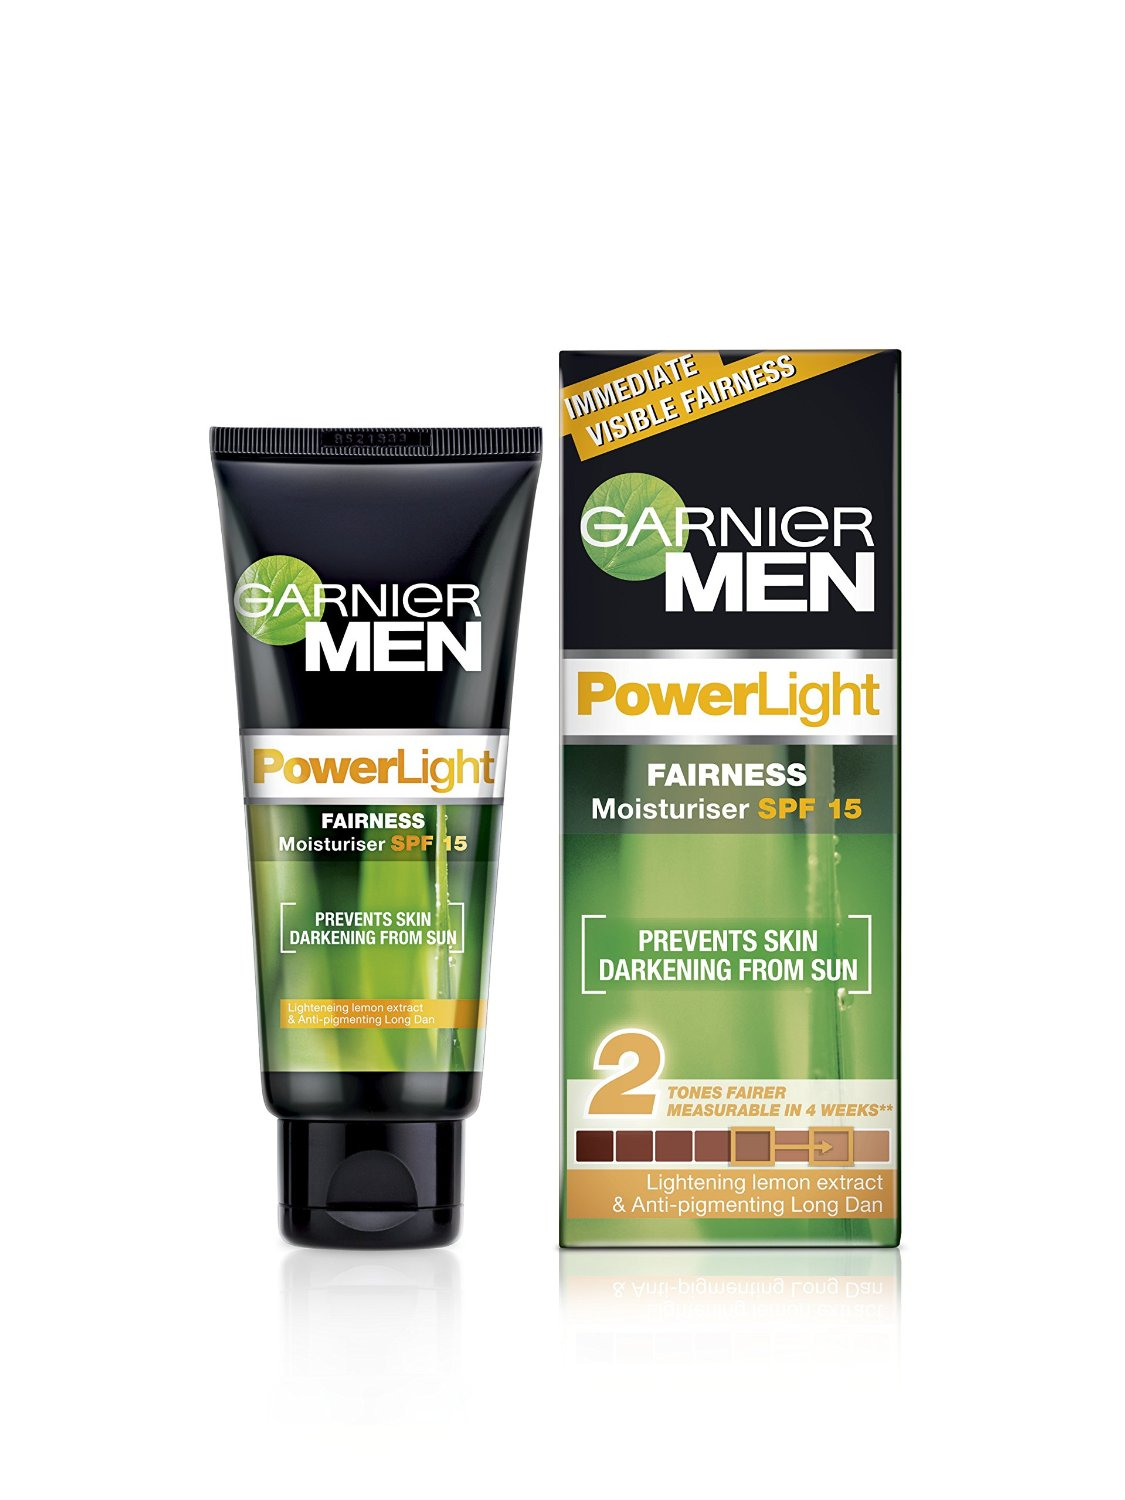 GARNIER MEN POWER LIGHT FAIRNESS MOISTURISER ( SPF 15 ) - 45 GM